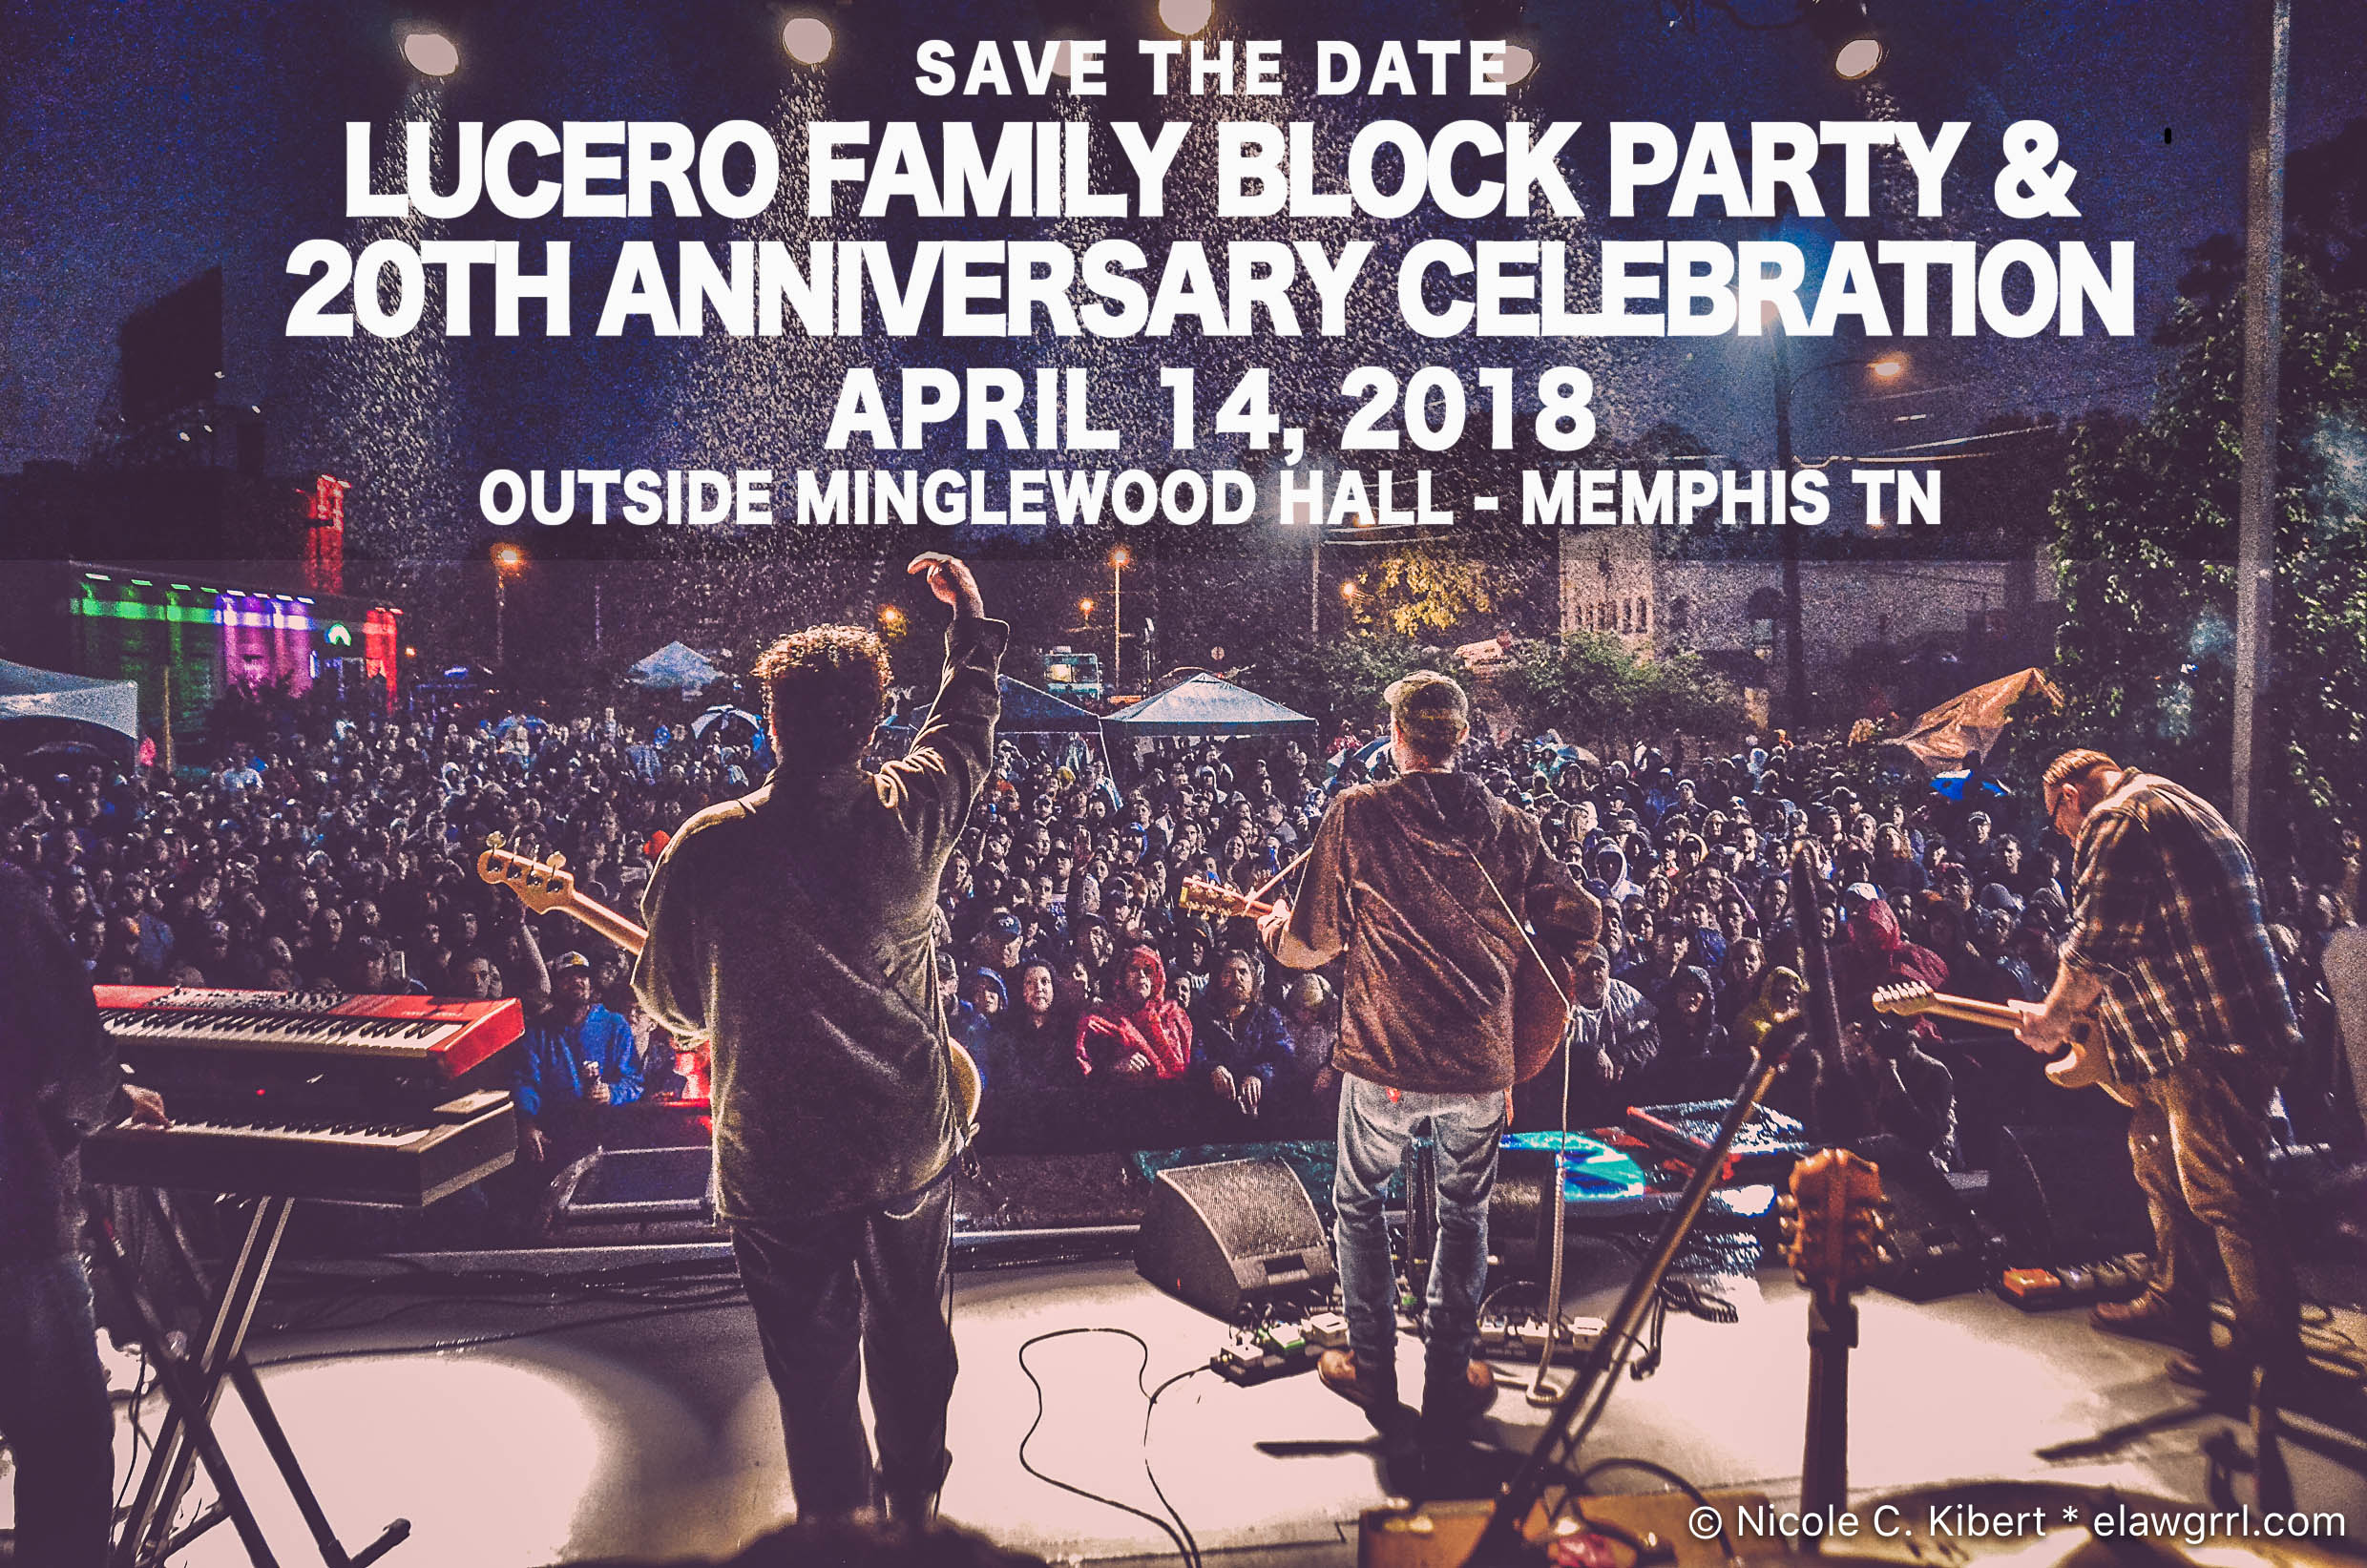 Lucero Family Christmas 2019 Lucero Family Block Party 2018 – Save the Date! – Lucero